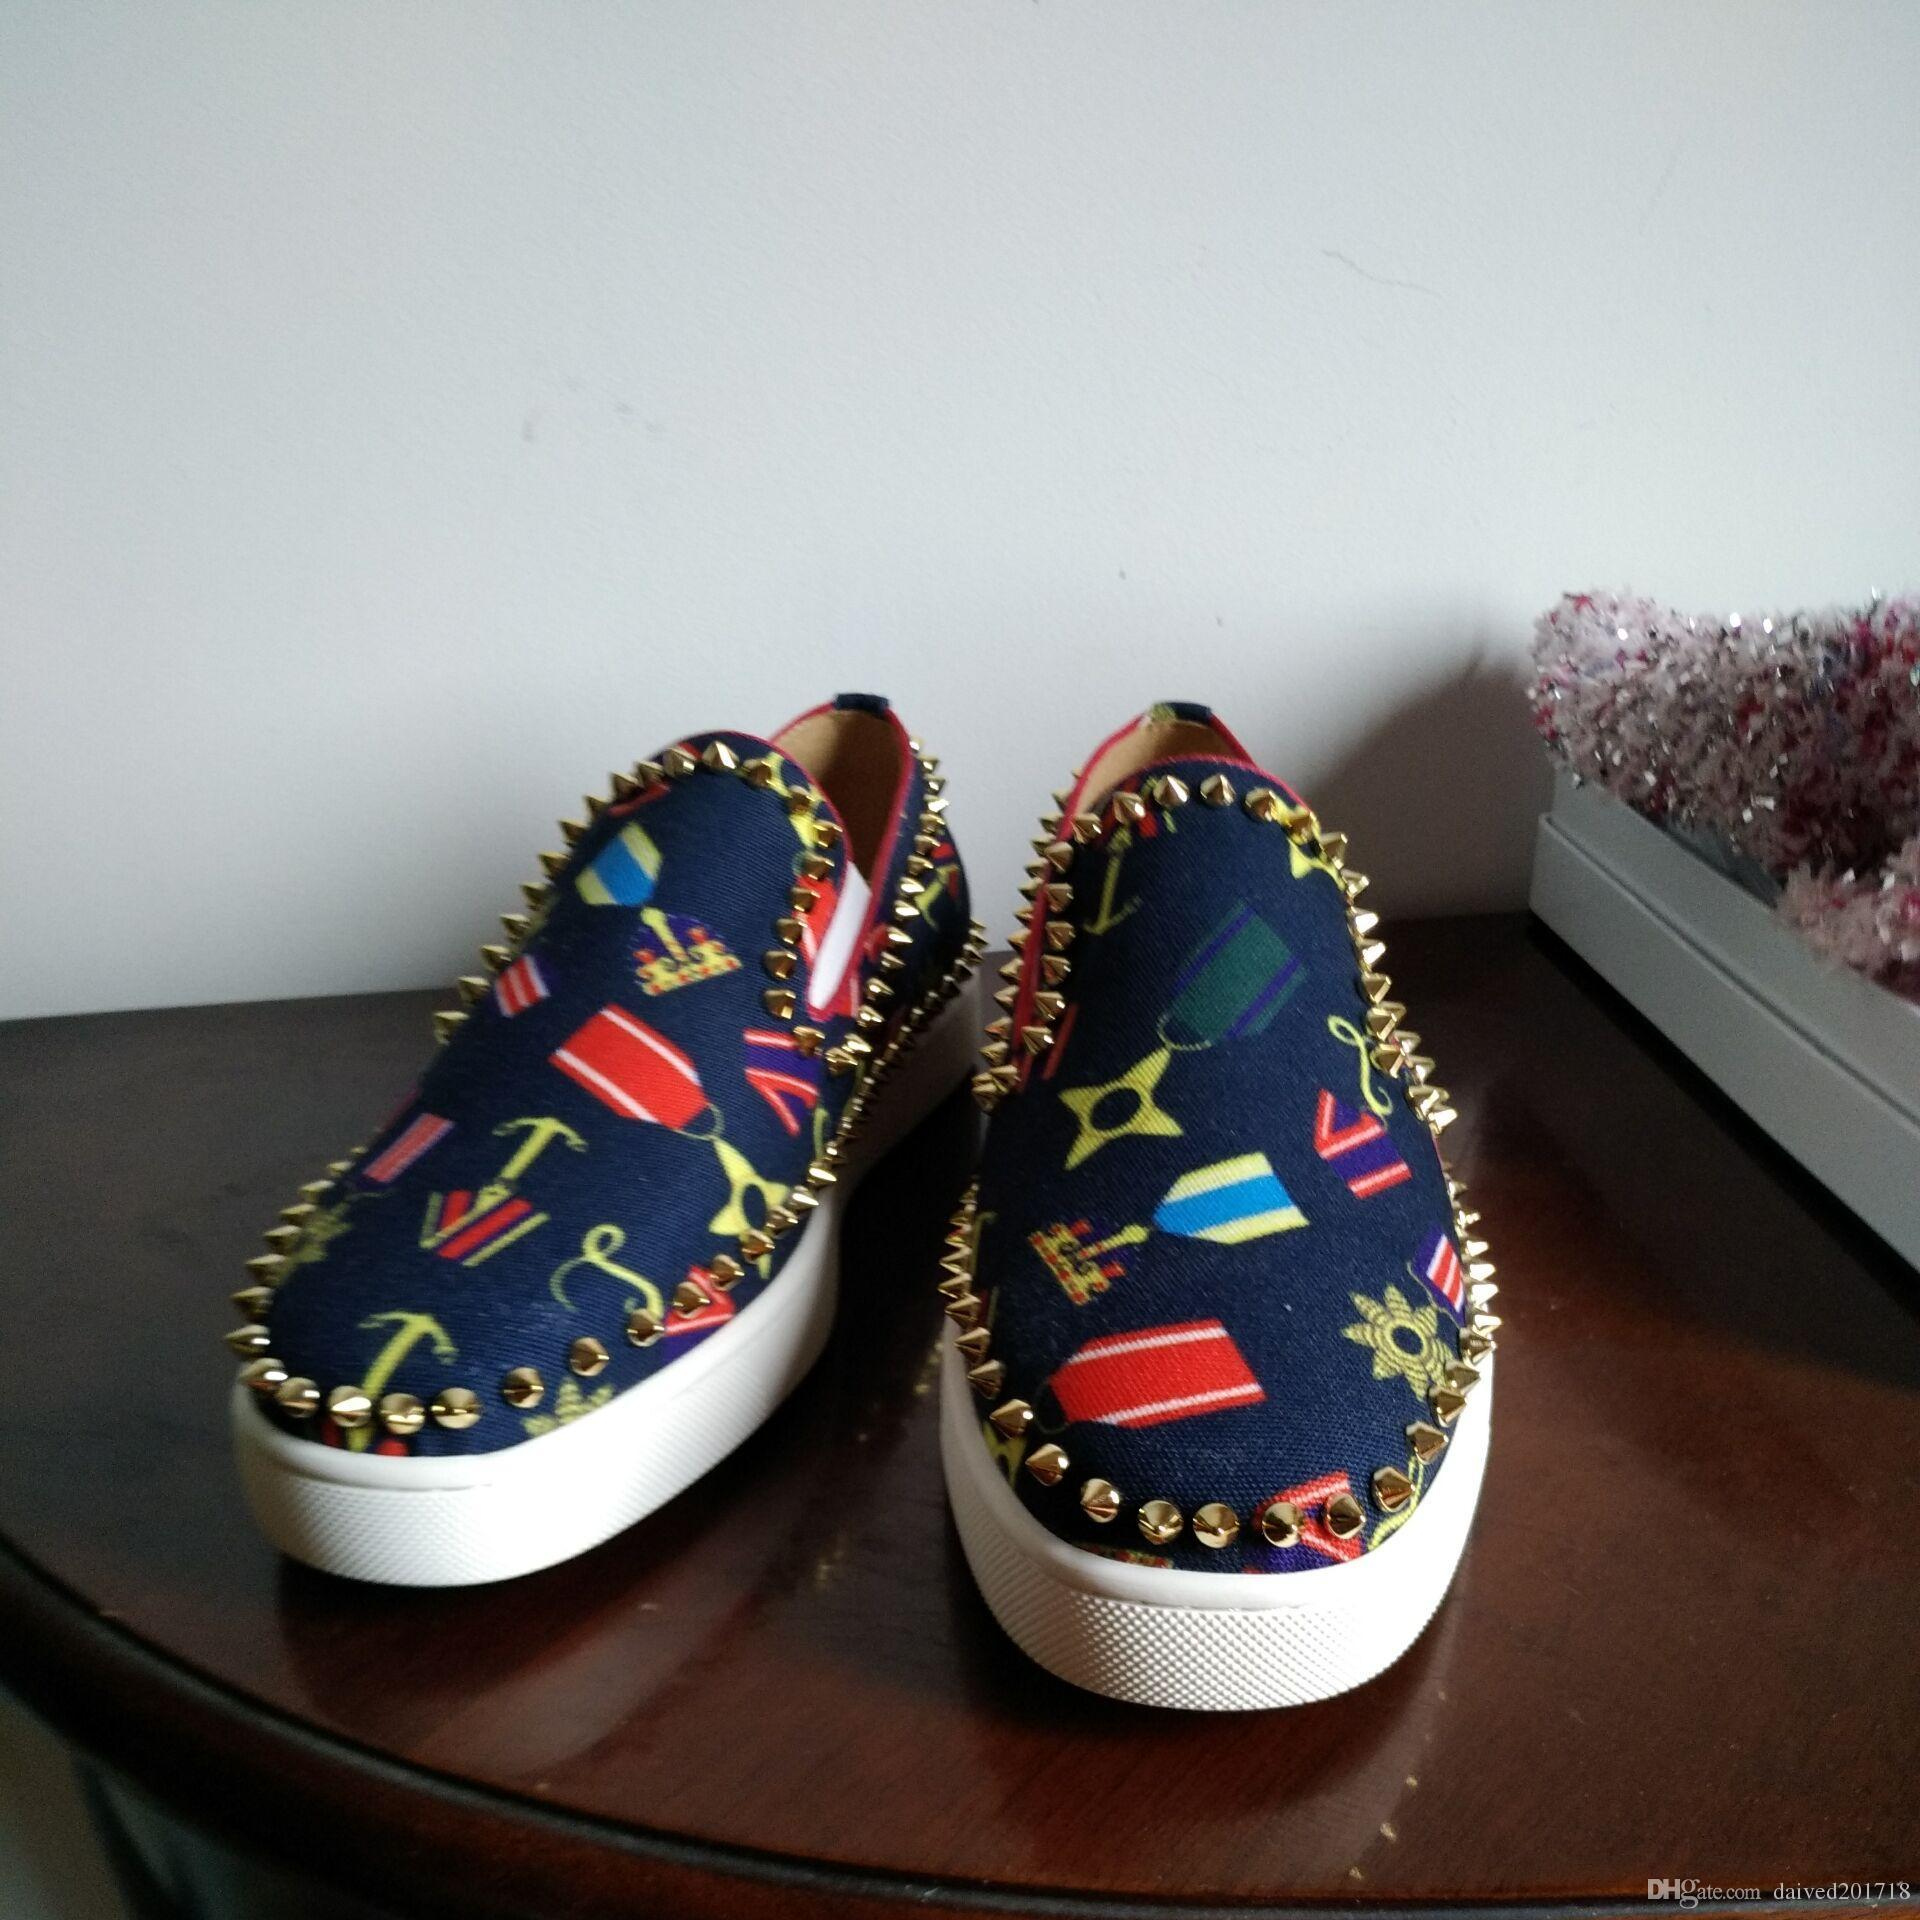 Ass Ic new european assic luxury style, men's and women's casual shoes, leather  canvas, rivet decoration, multicolor, optional rubber outsole. black shoes